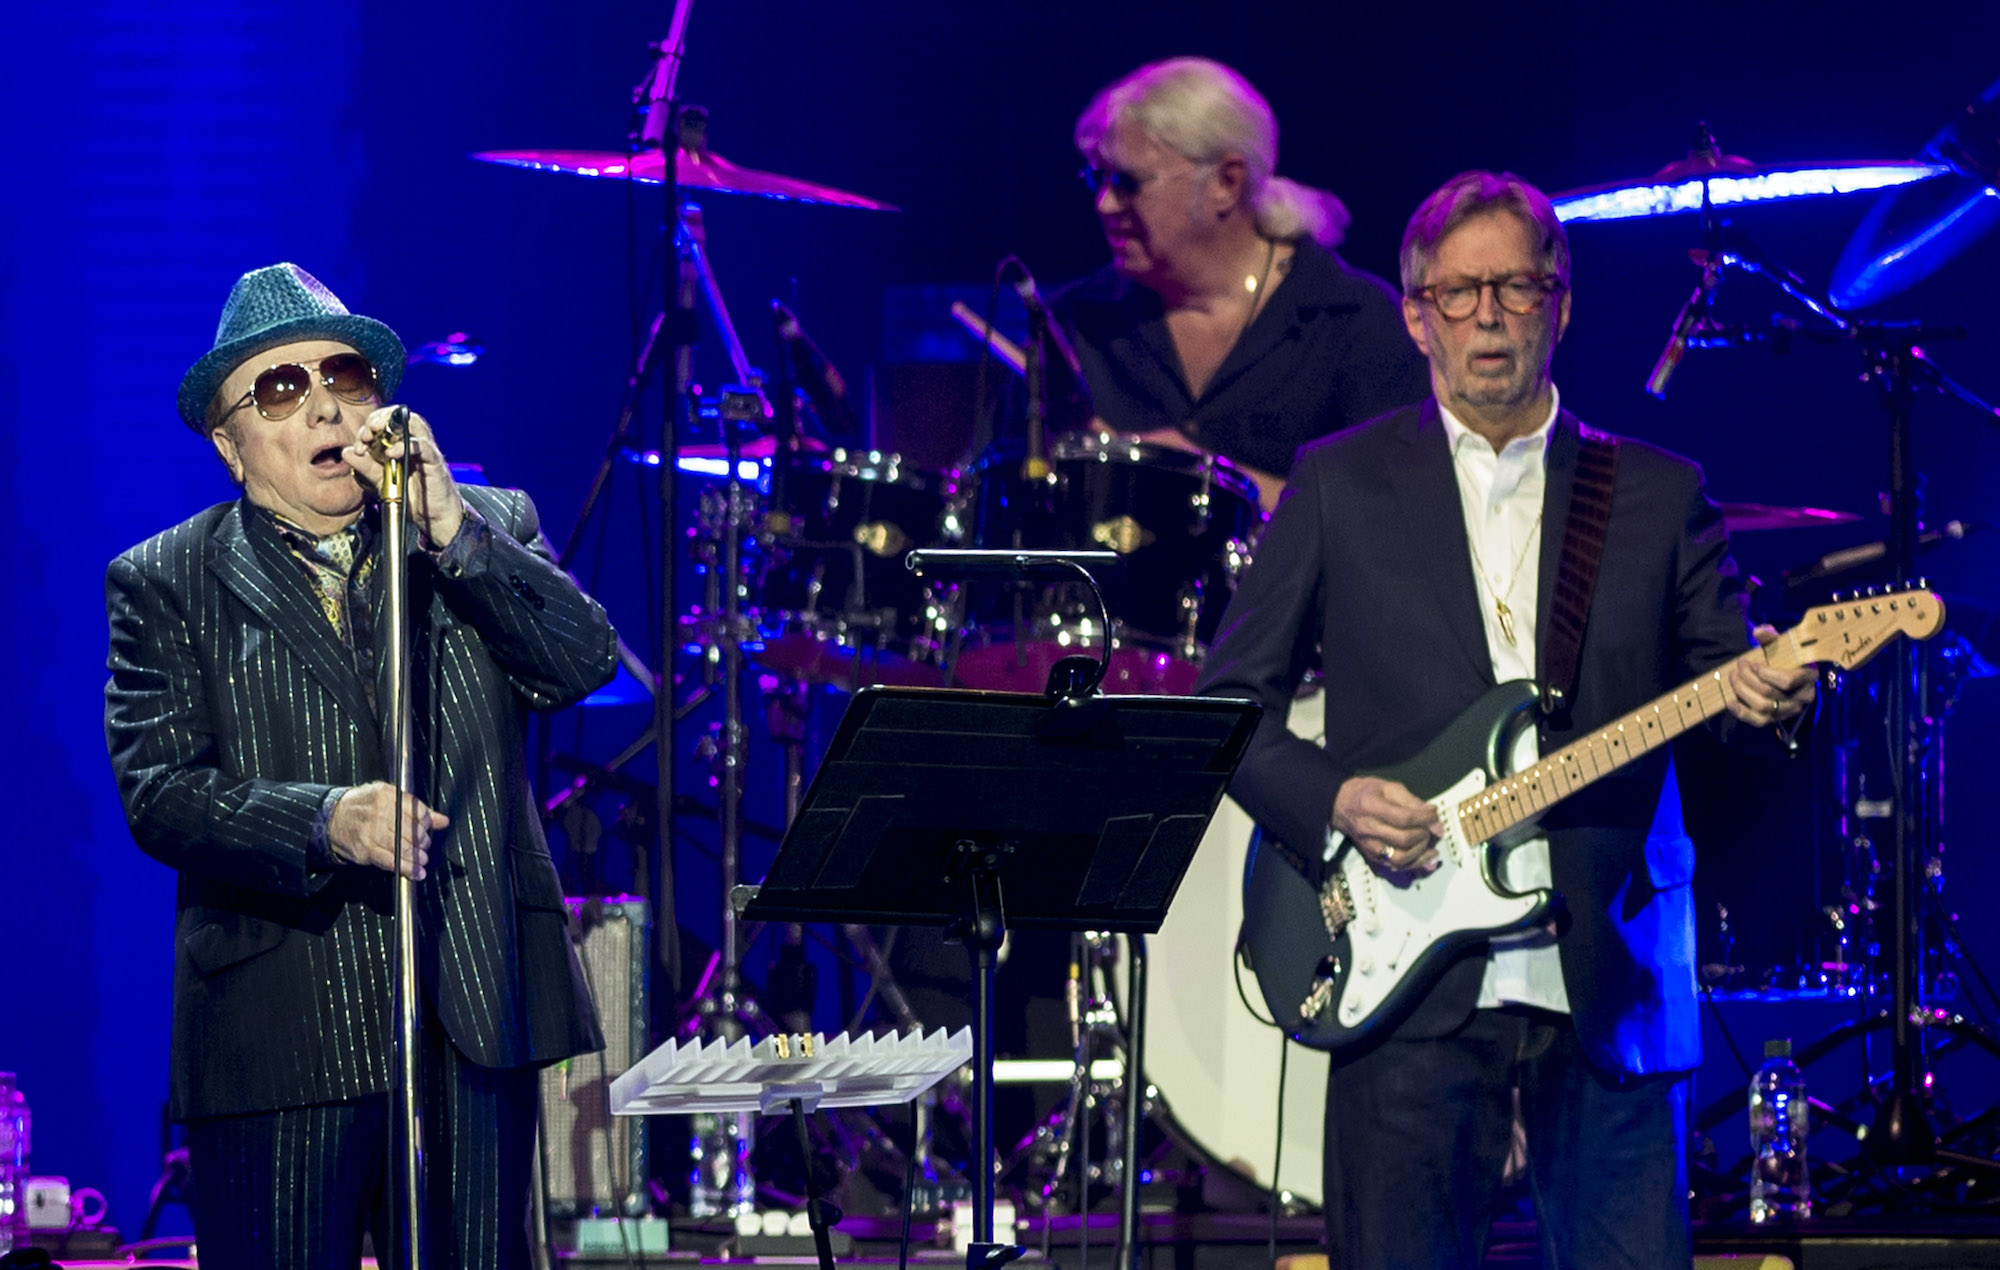 Eric Clapton announces new anti-lockdown song with Van Morrison